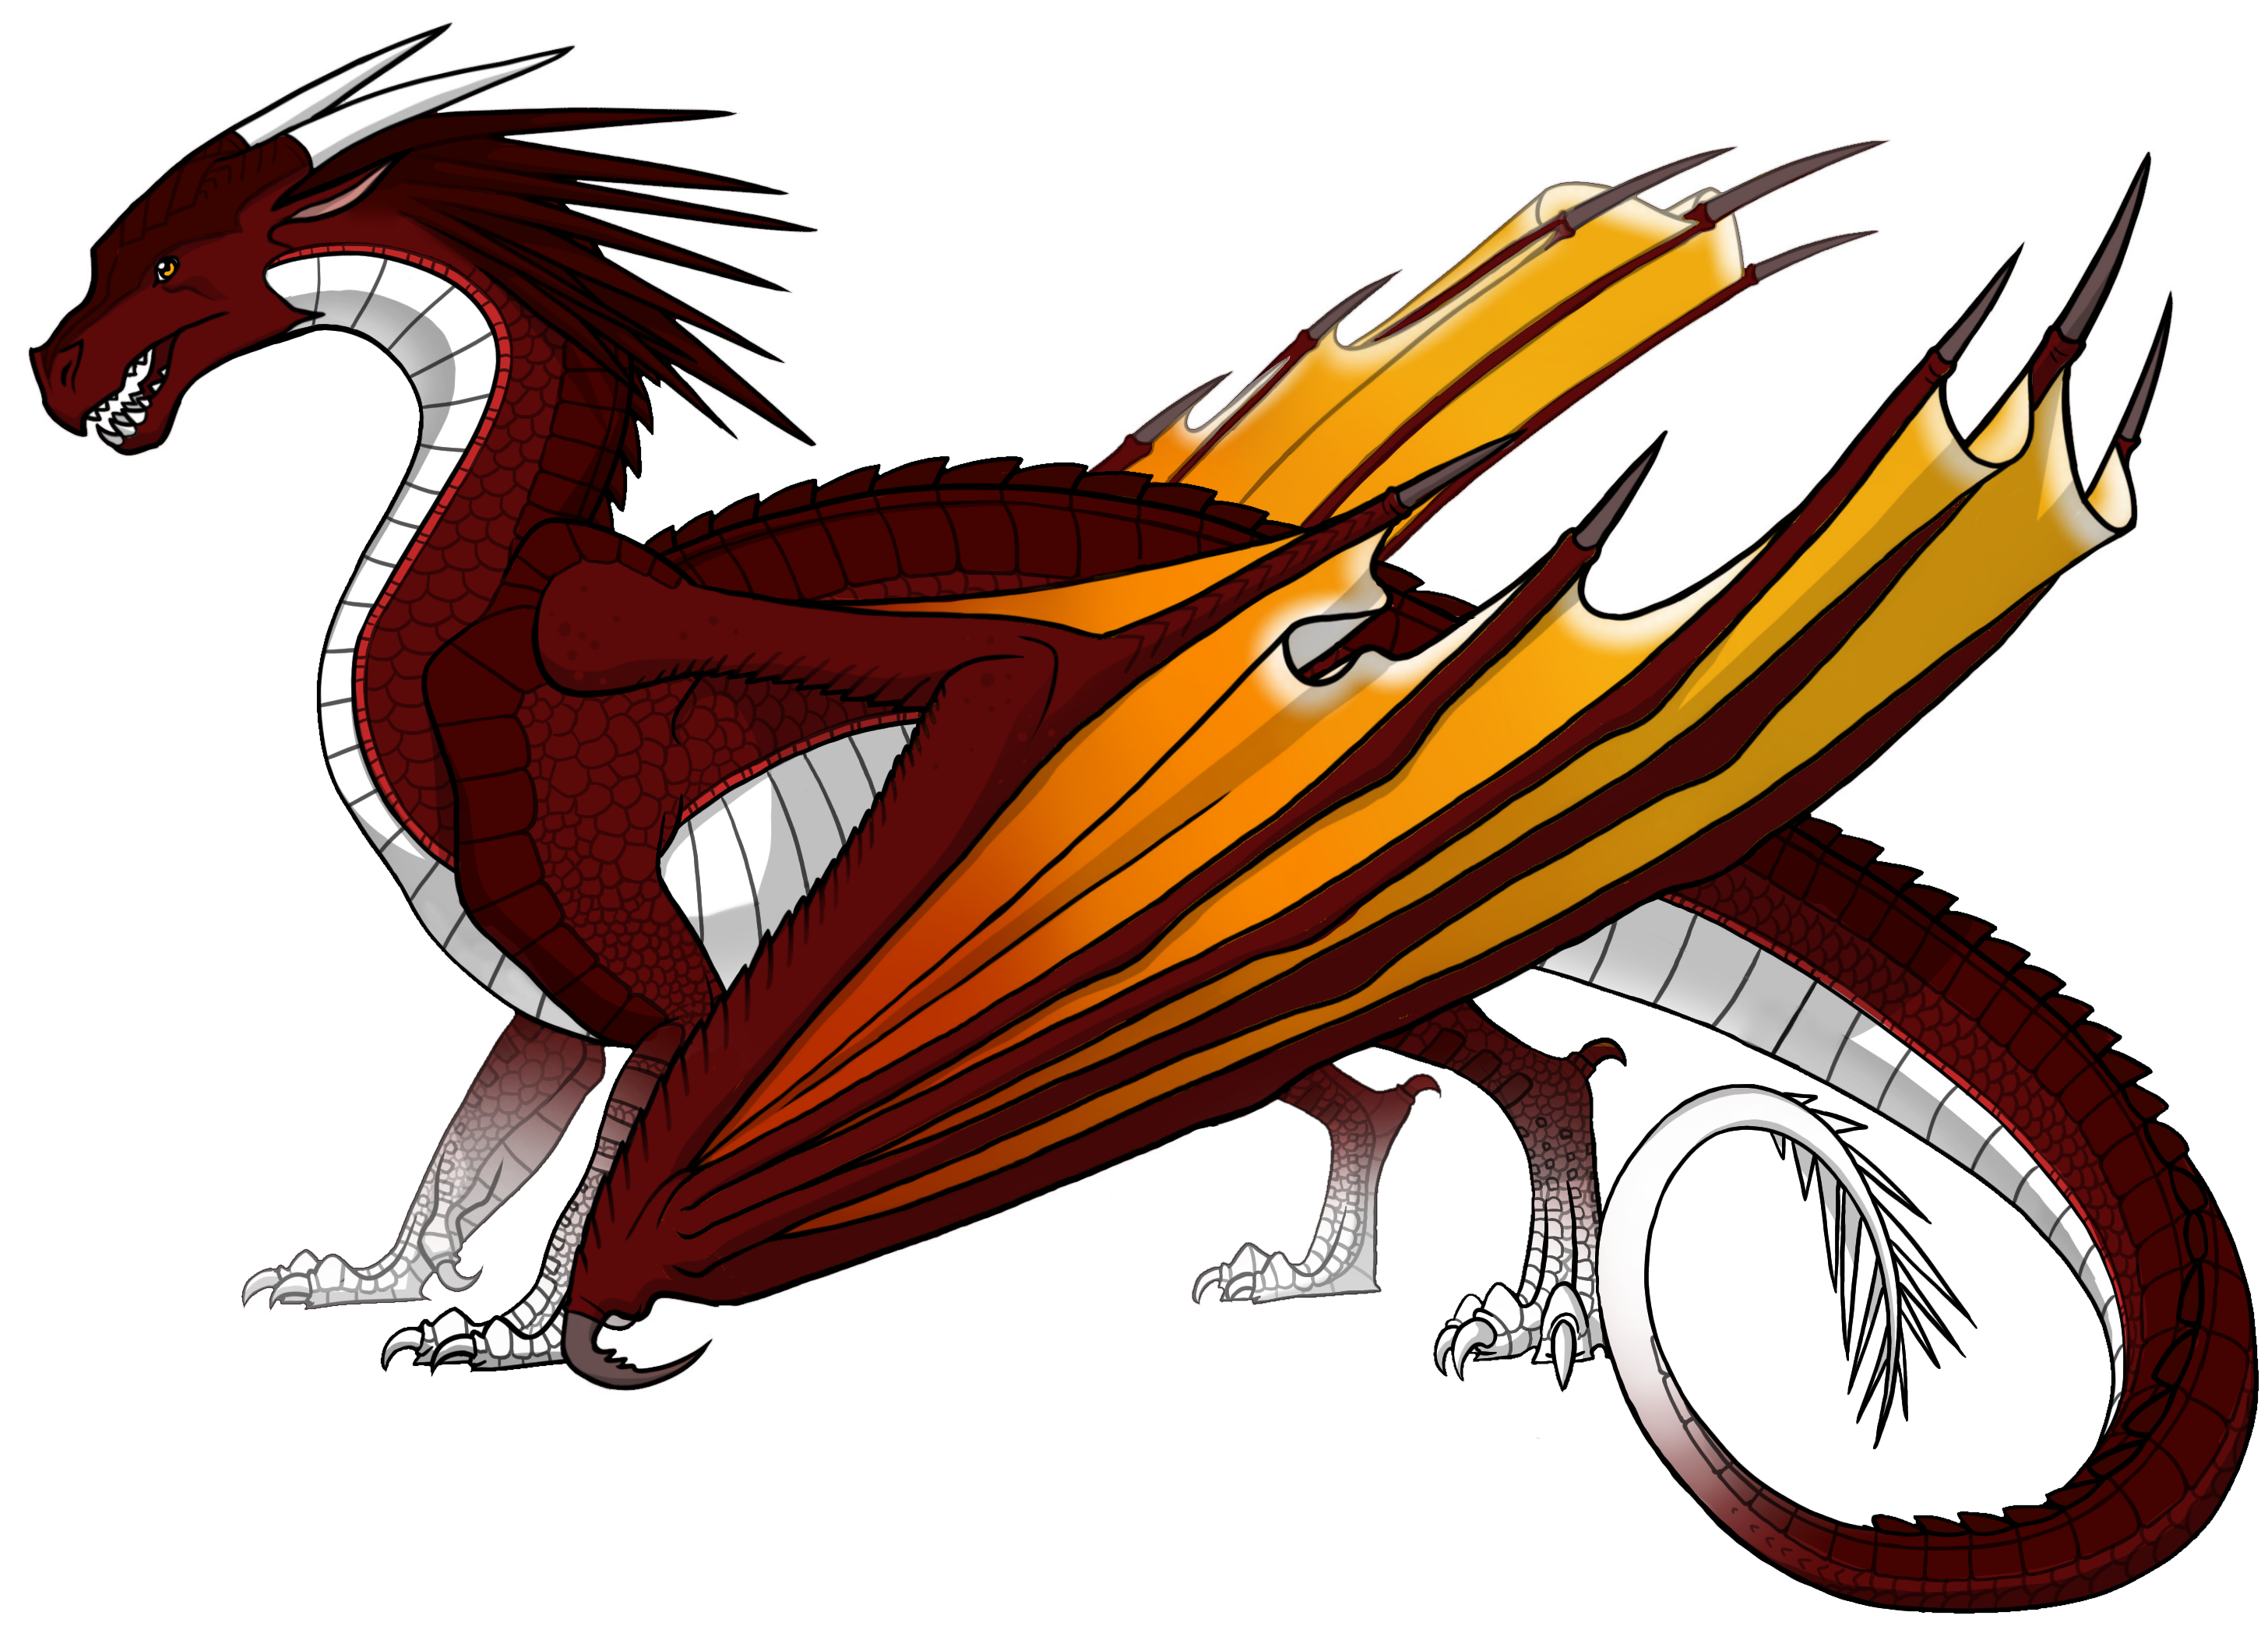 Pin By Queen Thorn On Wings Of Fire In 2020 Wings Of Fire Dragons Wings Of Fire Fire Art